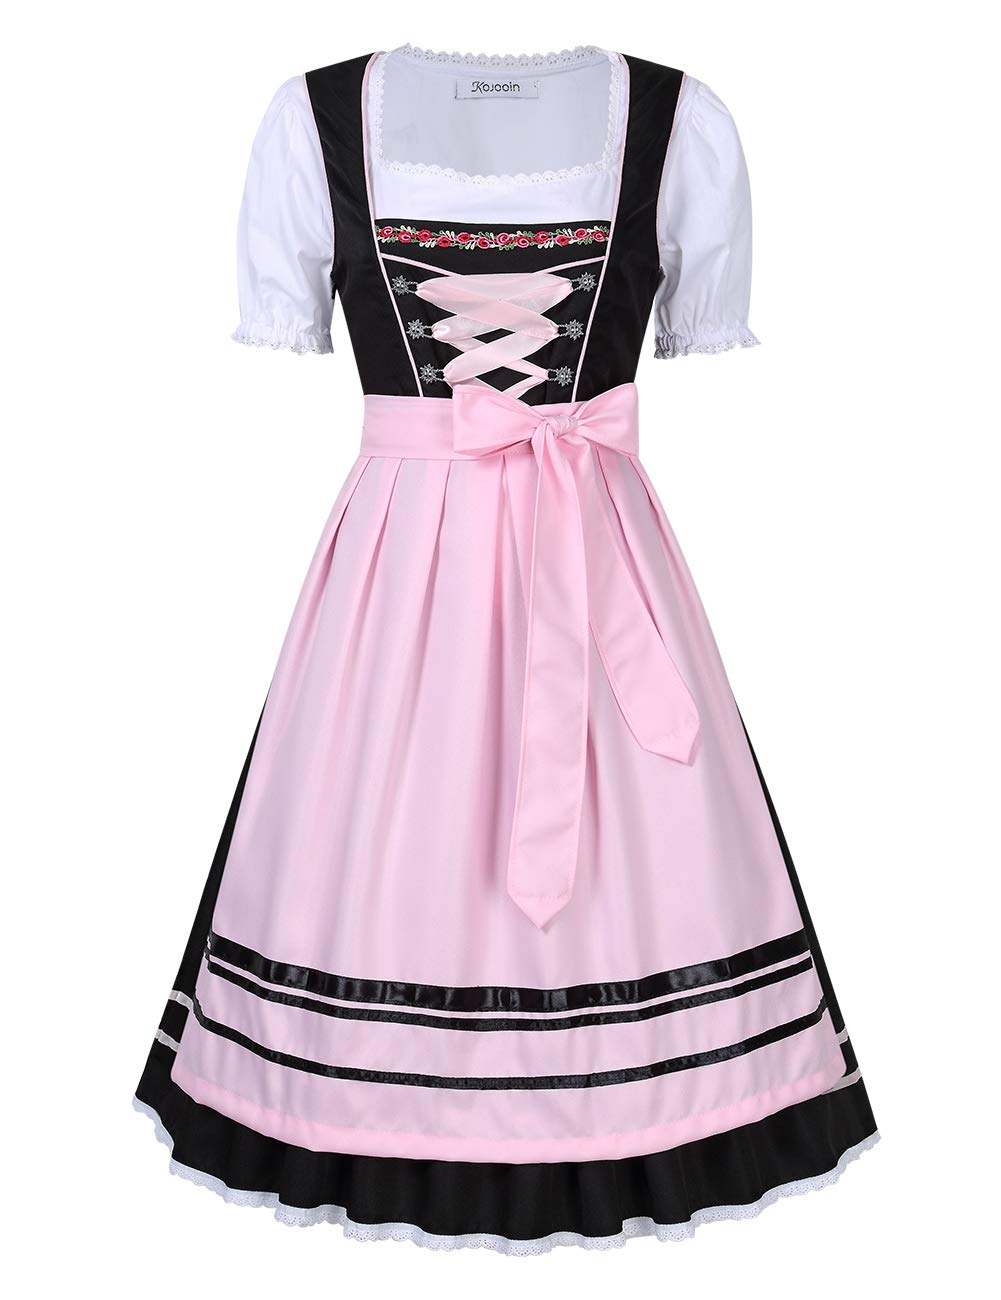 Leoie Kojooin Women's German Dirndl Dress 3 Pieces Oktoberfest Costumes Black Thirty-four